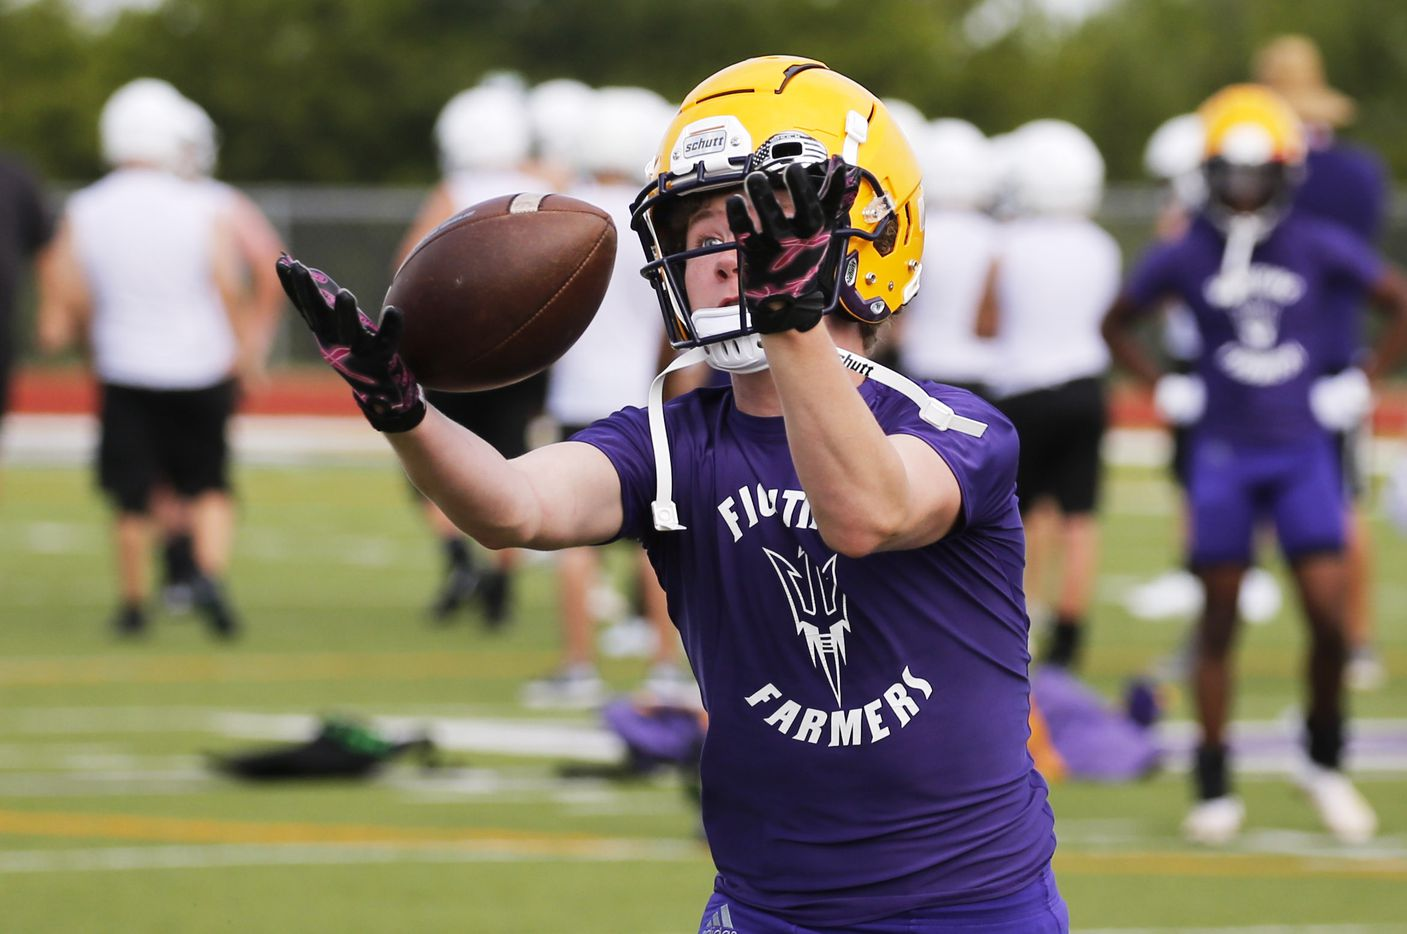 Farmersville's Gavin Parks makes a catch in a drill during the first day of high school football practice for 4A's Farmersville High School in Farmersville, Texas on Monday, August 3, 2020. (Vernon Bryant/The Dallas Morning News)